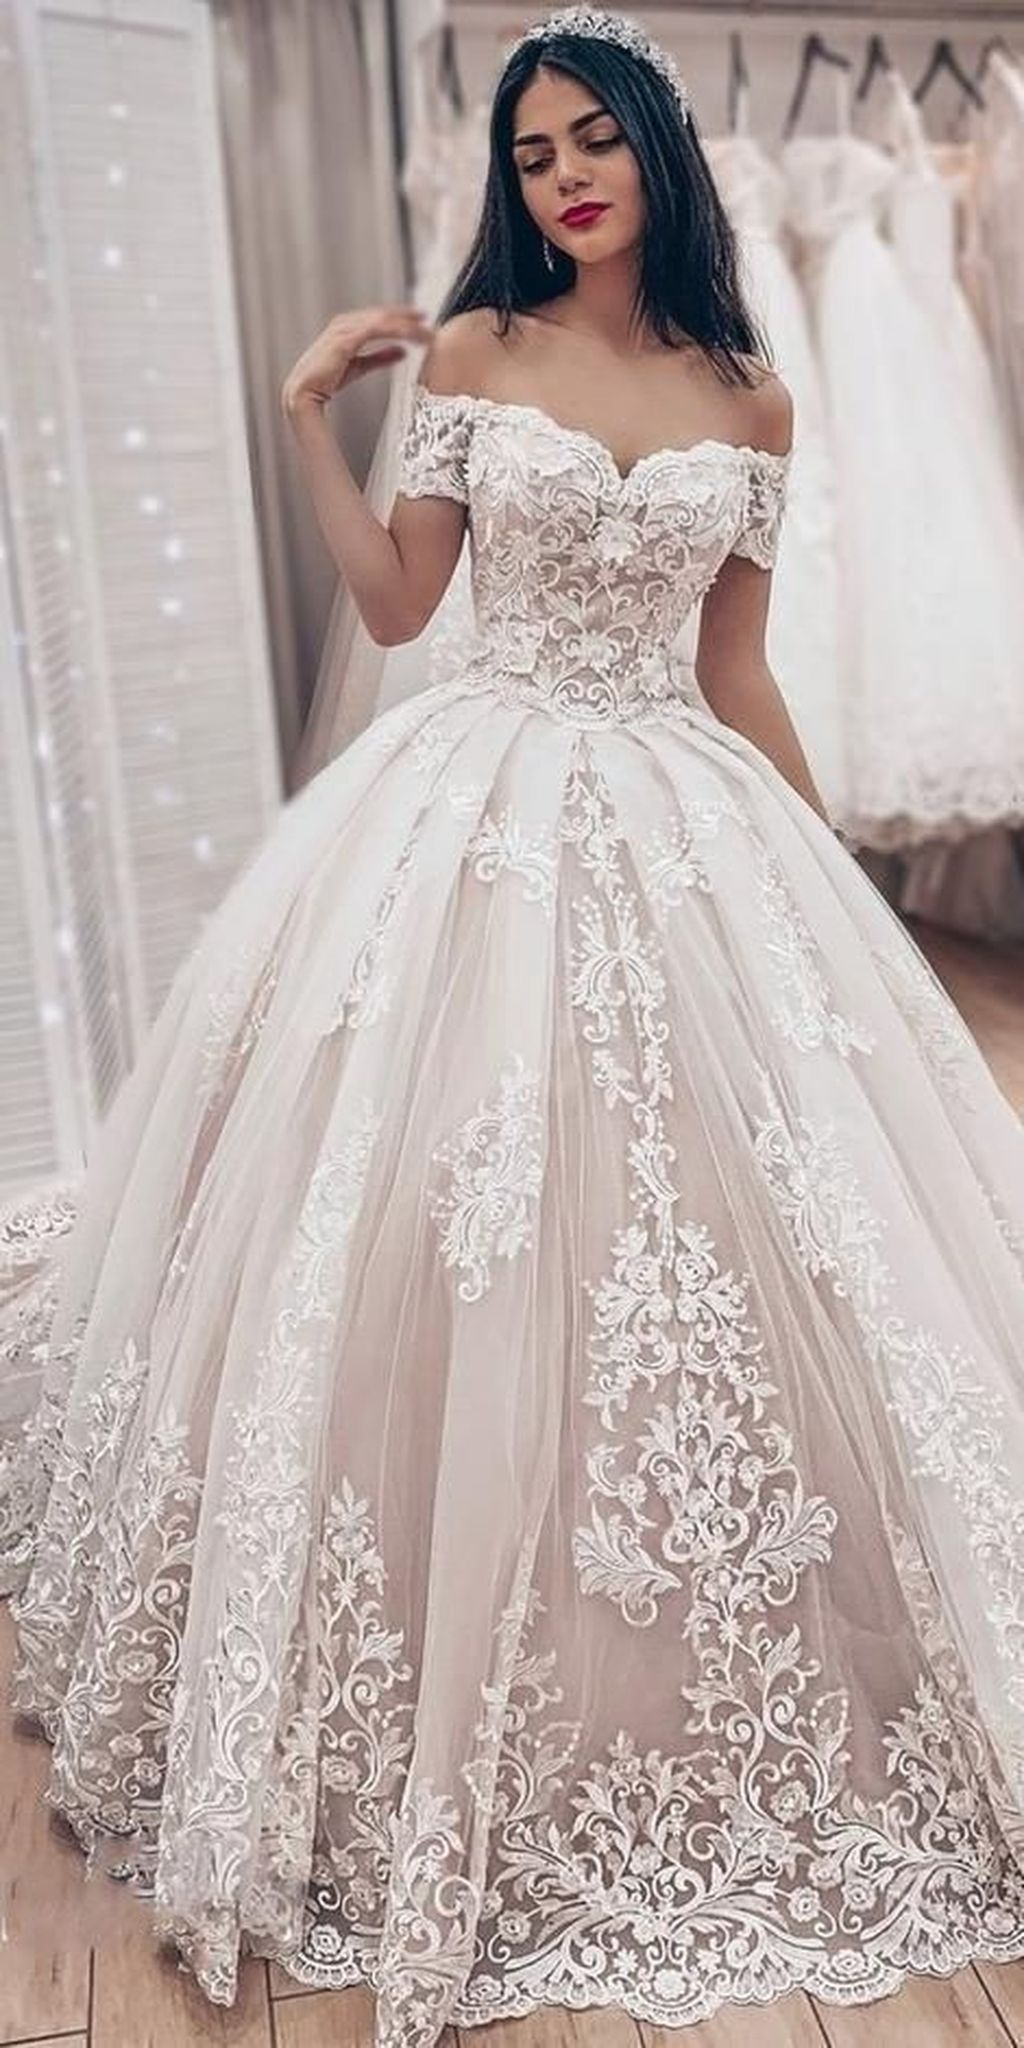 Beauty Off The Shoulder V Neck Applique Full Length Evening Dress Tulle Lace Short Sleeves Wedd In 2020 Popular Wedding Dresses Wedding Dresses Ball Gown Wedding Dress